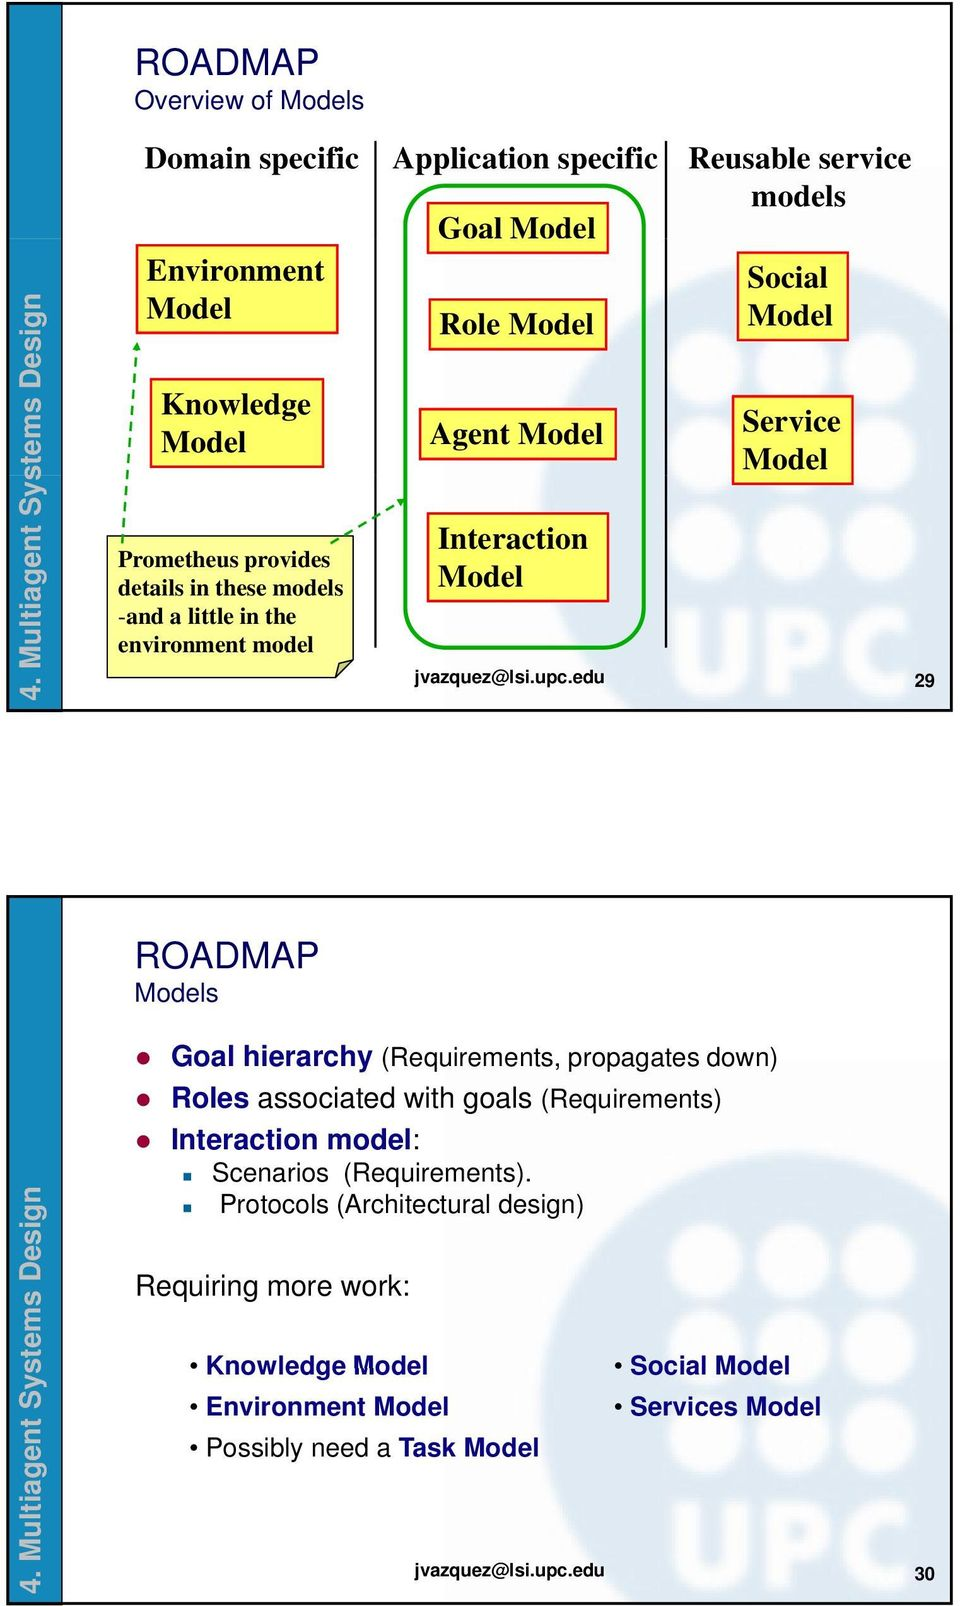 edu 29 ROADMAP Models Goal hierarchy (Requirements, propagates down) Roles associated with goals (Requirements) Interaction ti model: Scenarios